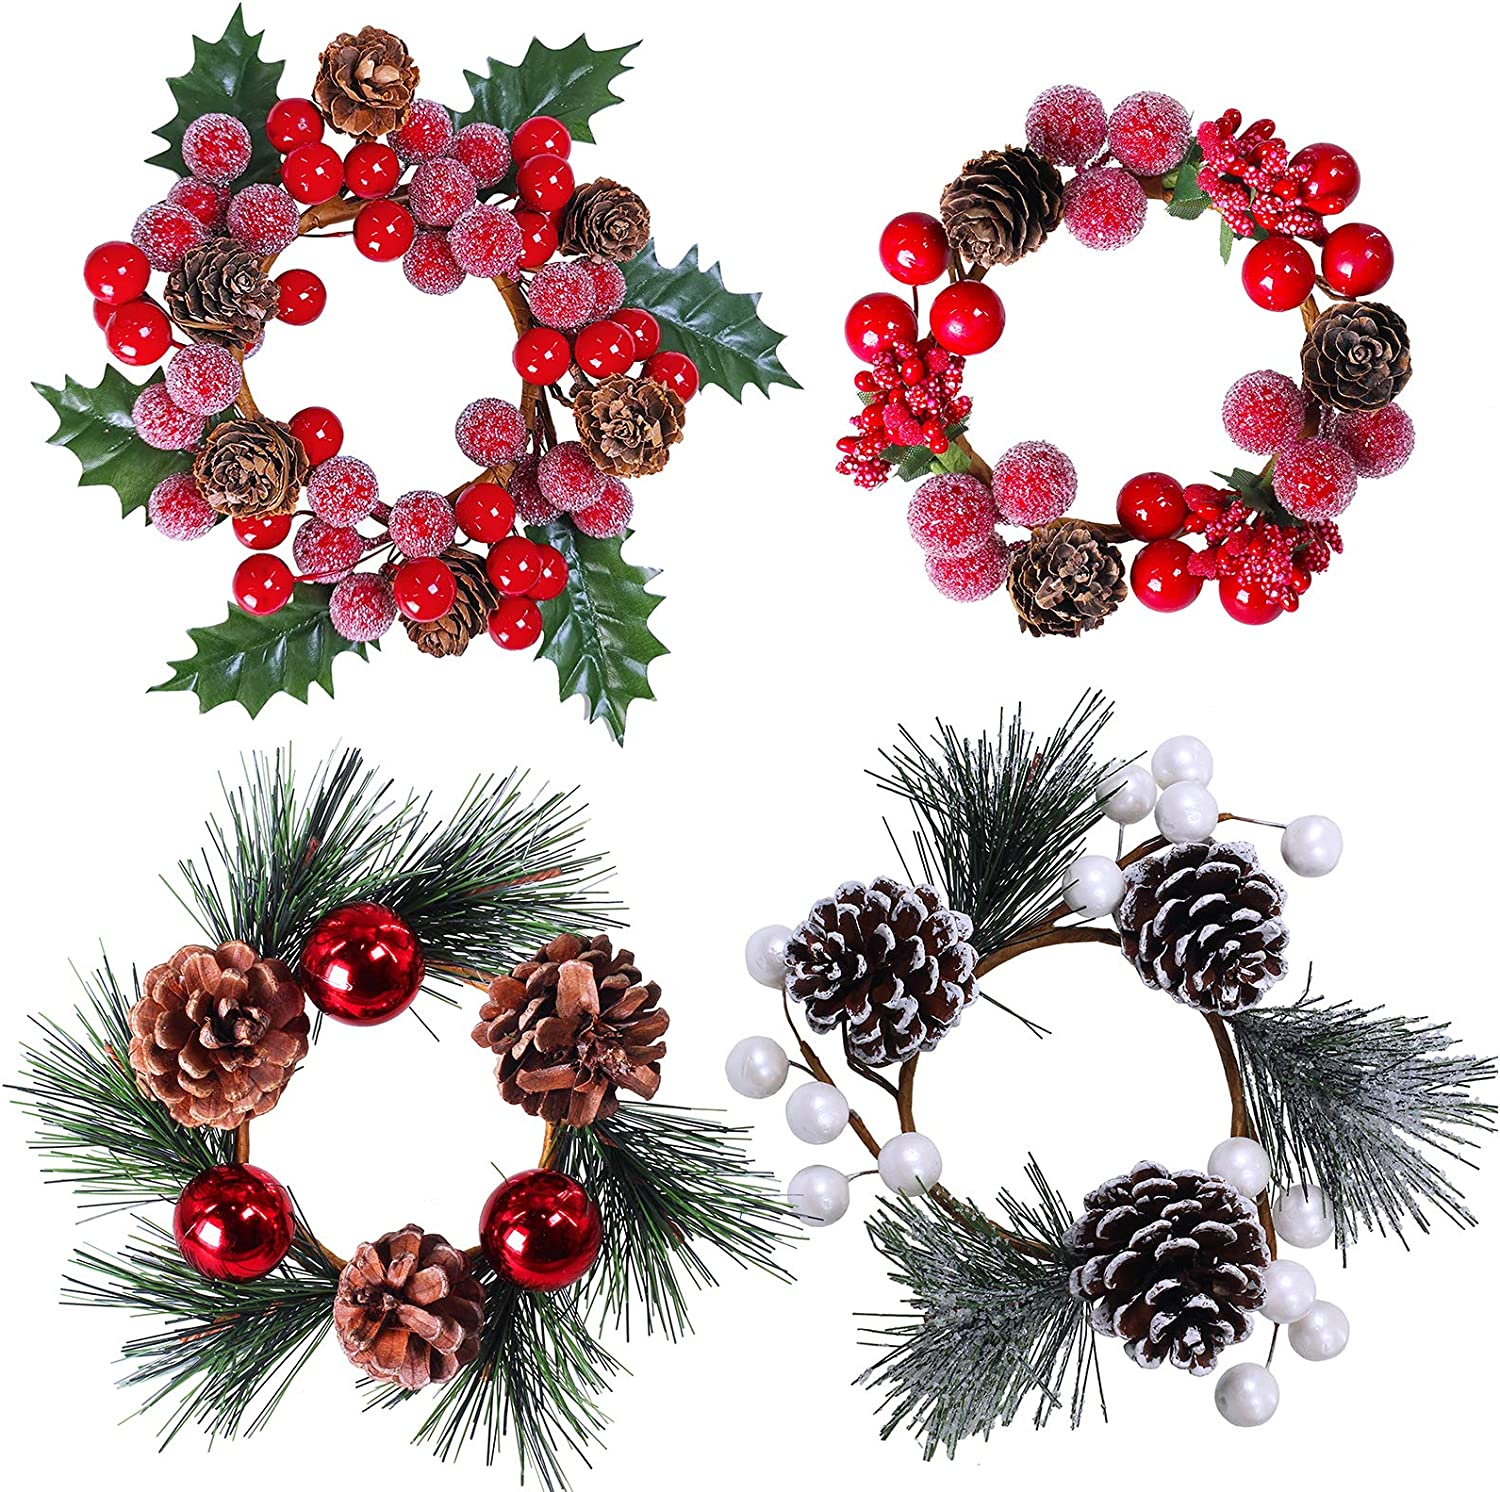 Set of 4 Christmas Candle Holder Rings Assortment Artificial Pine Cone and Berry Candle Rings Candle Wreath Rings Mini Wreaths with Pine Needles Holly Leaves Red Balls for Christmas Winter Decoration